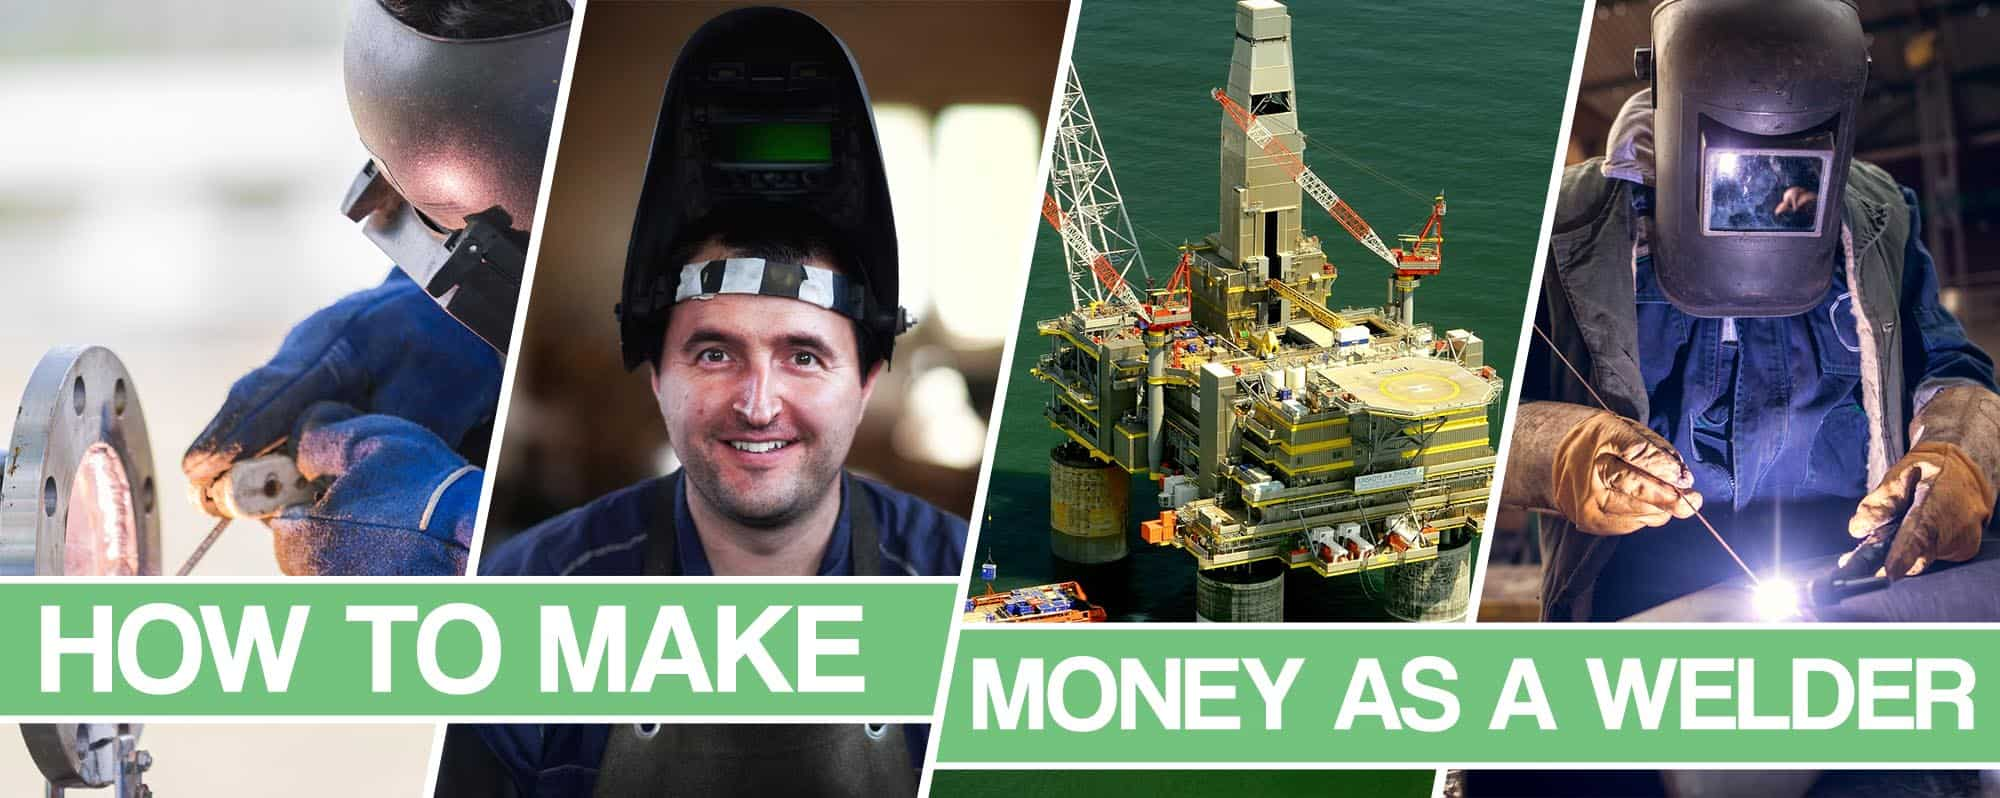 Feature image for How to Make Money Welding article